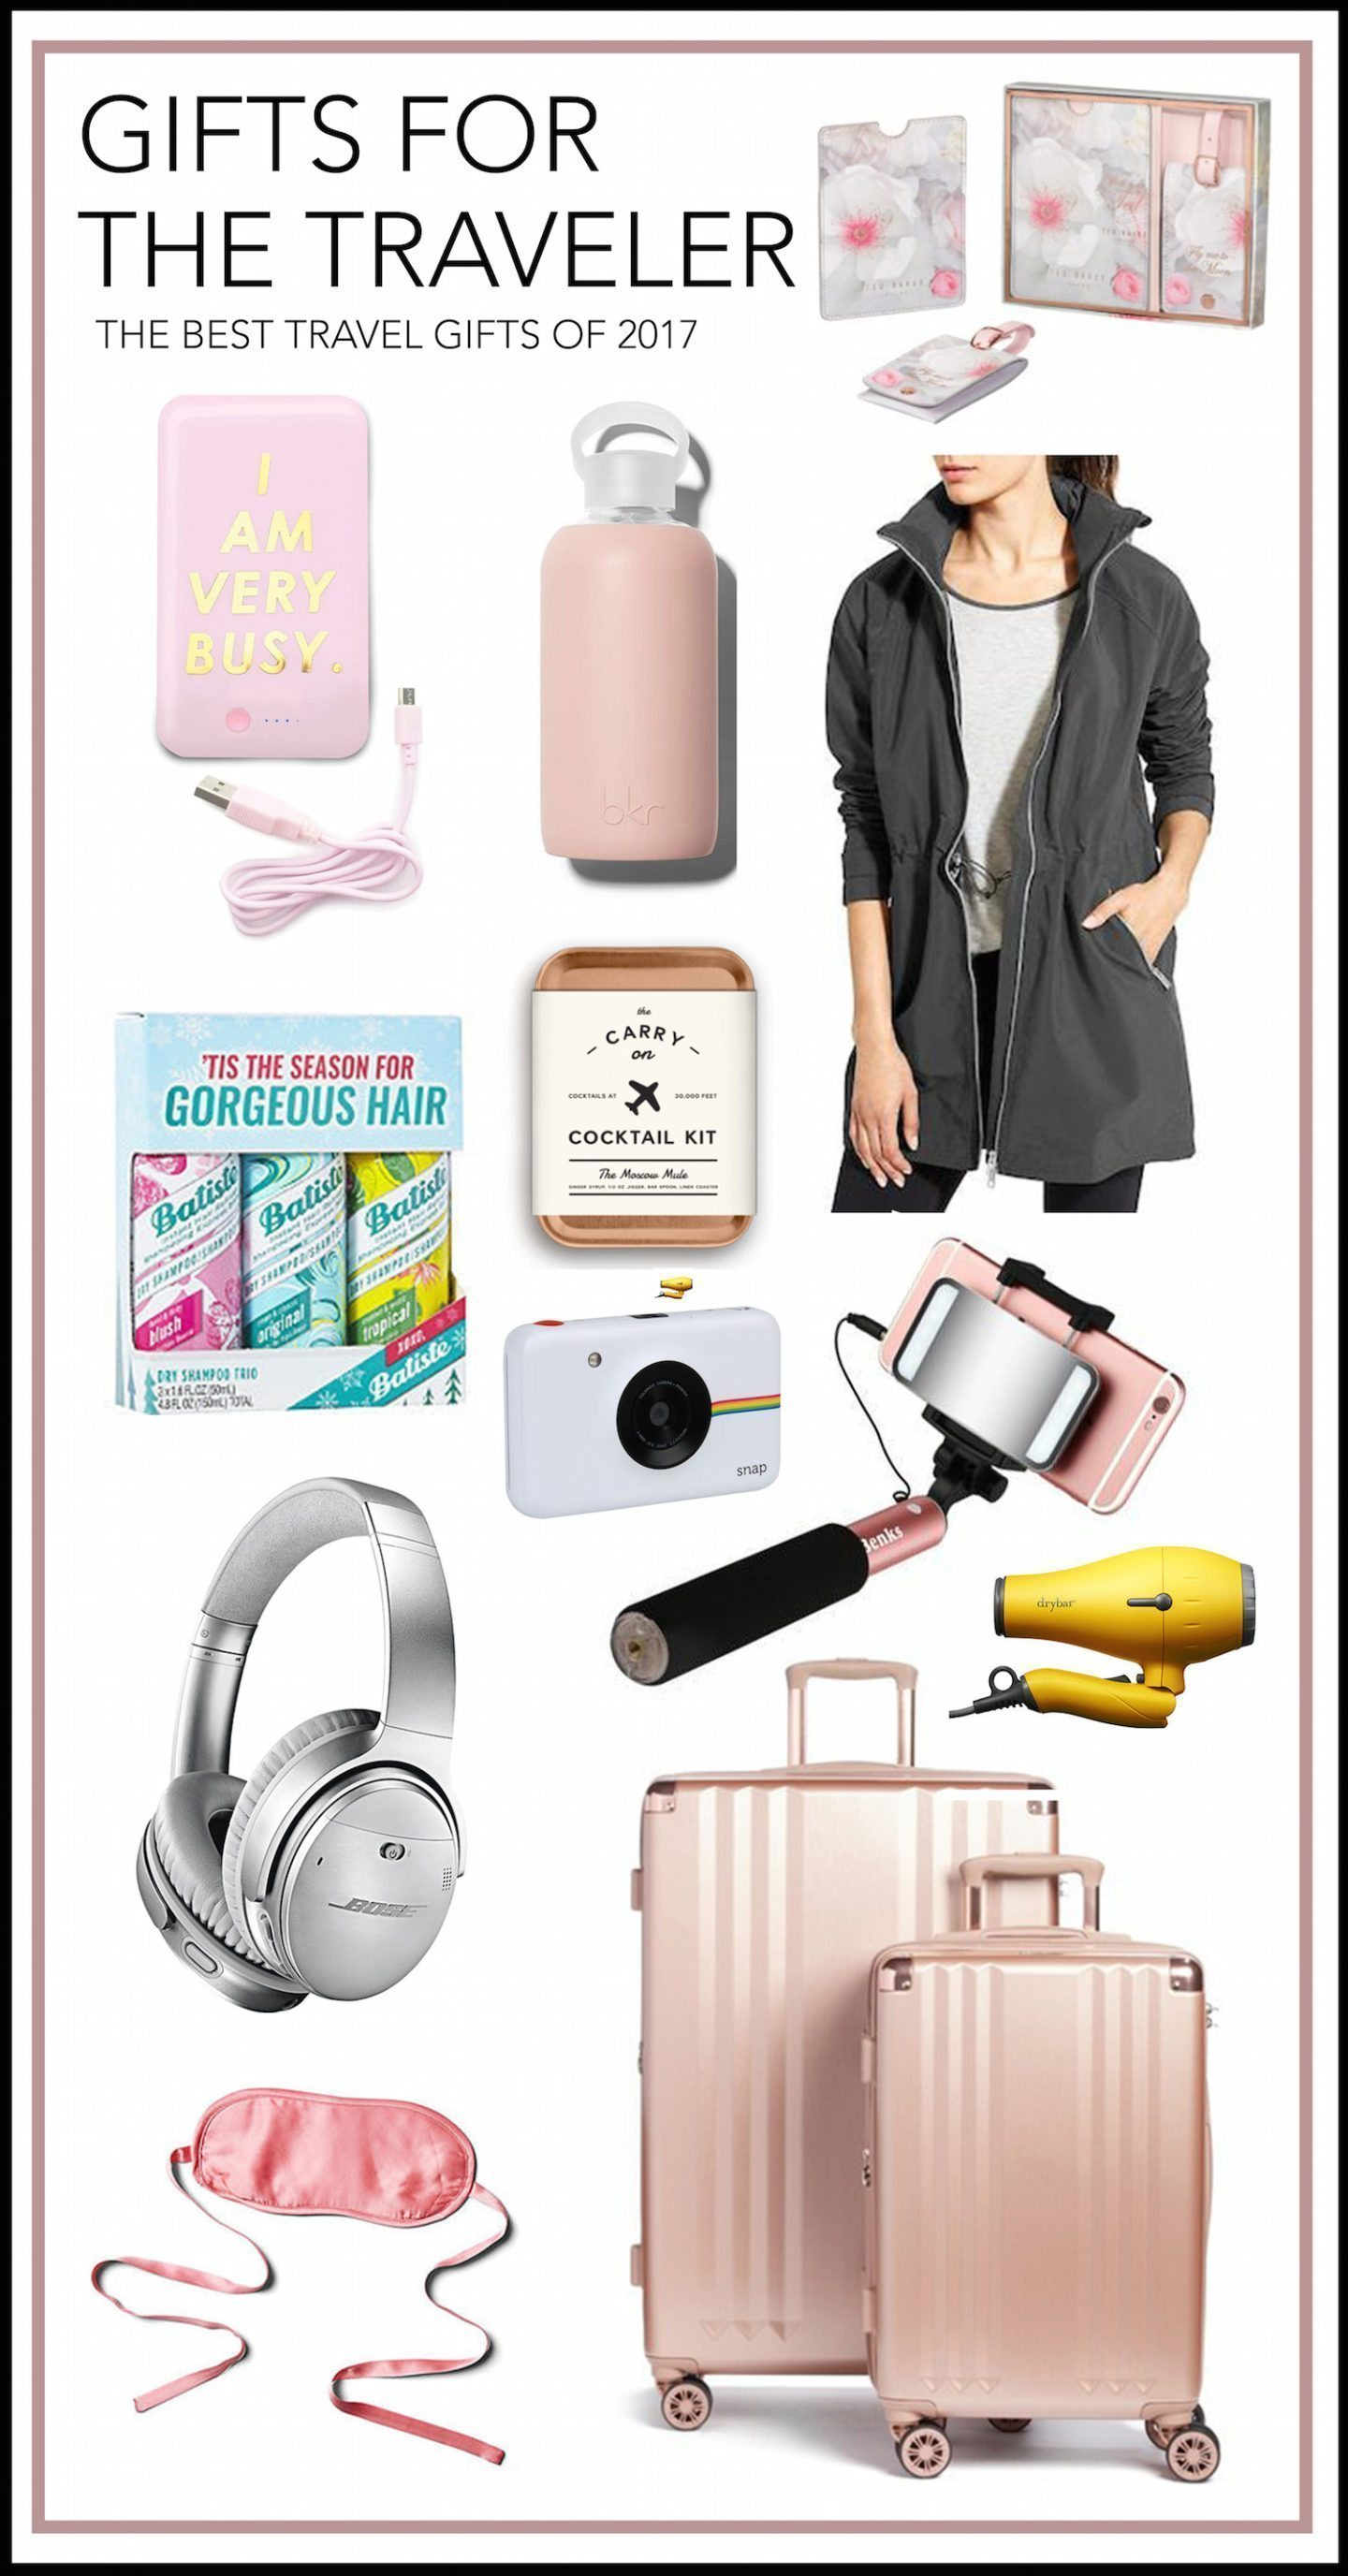 Holiday gift guide the best travel gifts 2017 holly habeck for Christmas gifts for travelers